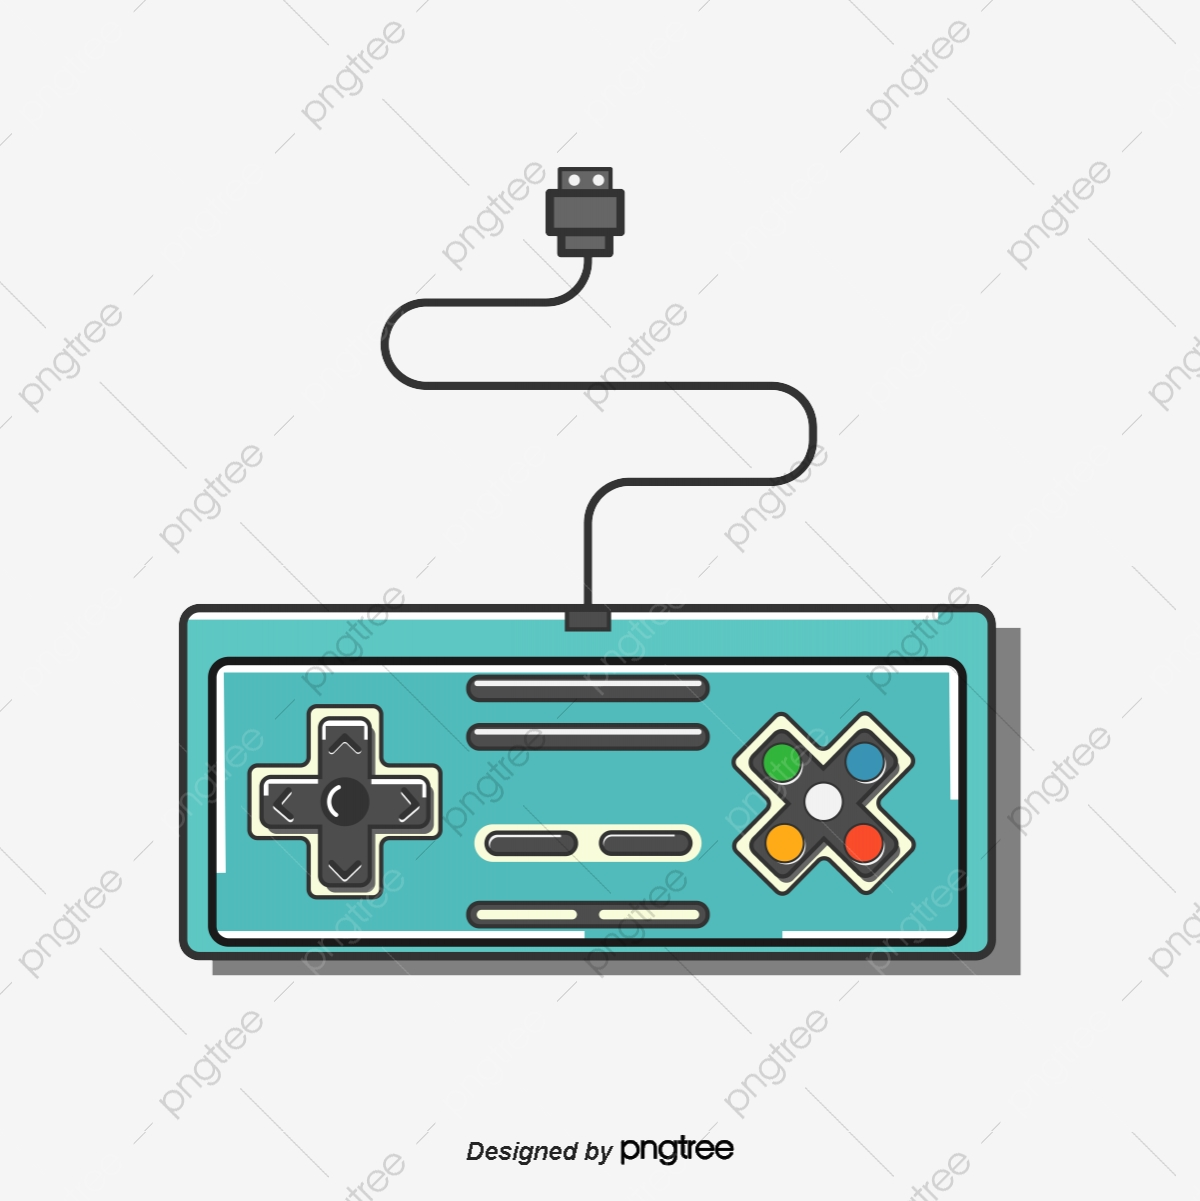 Game Controller Png Images Vector And Psd Files Free Download On Pngtree